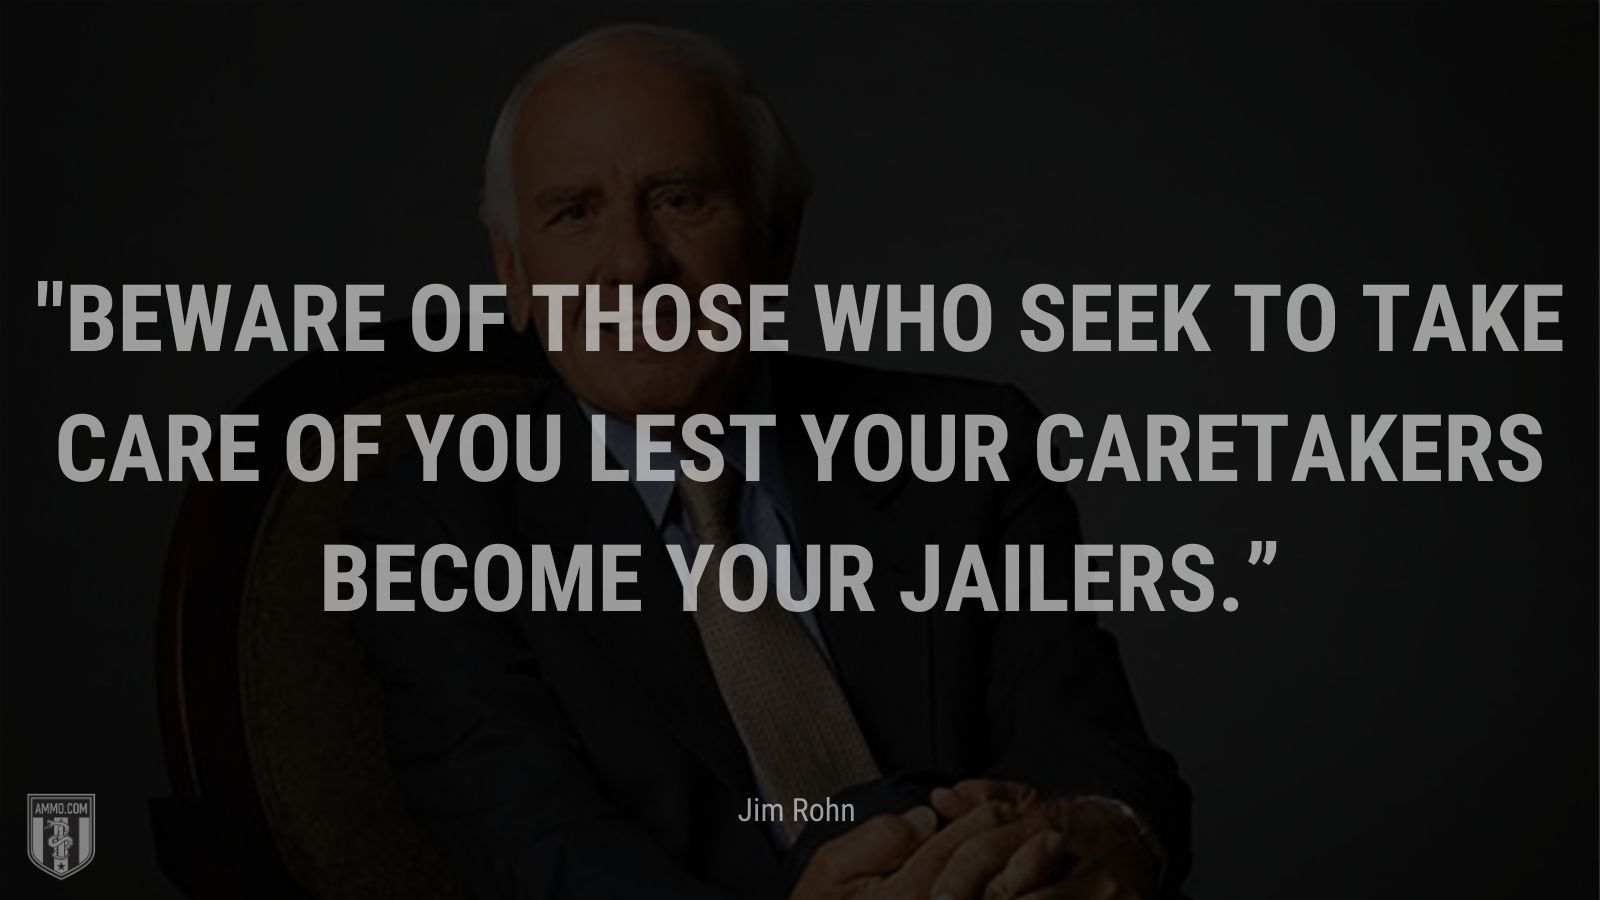 """""""Beware of those who seek to take care of you lest your caretakers become your jailers."""" - Jim Rohn"""